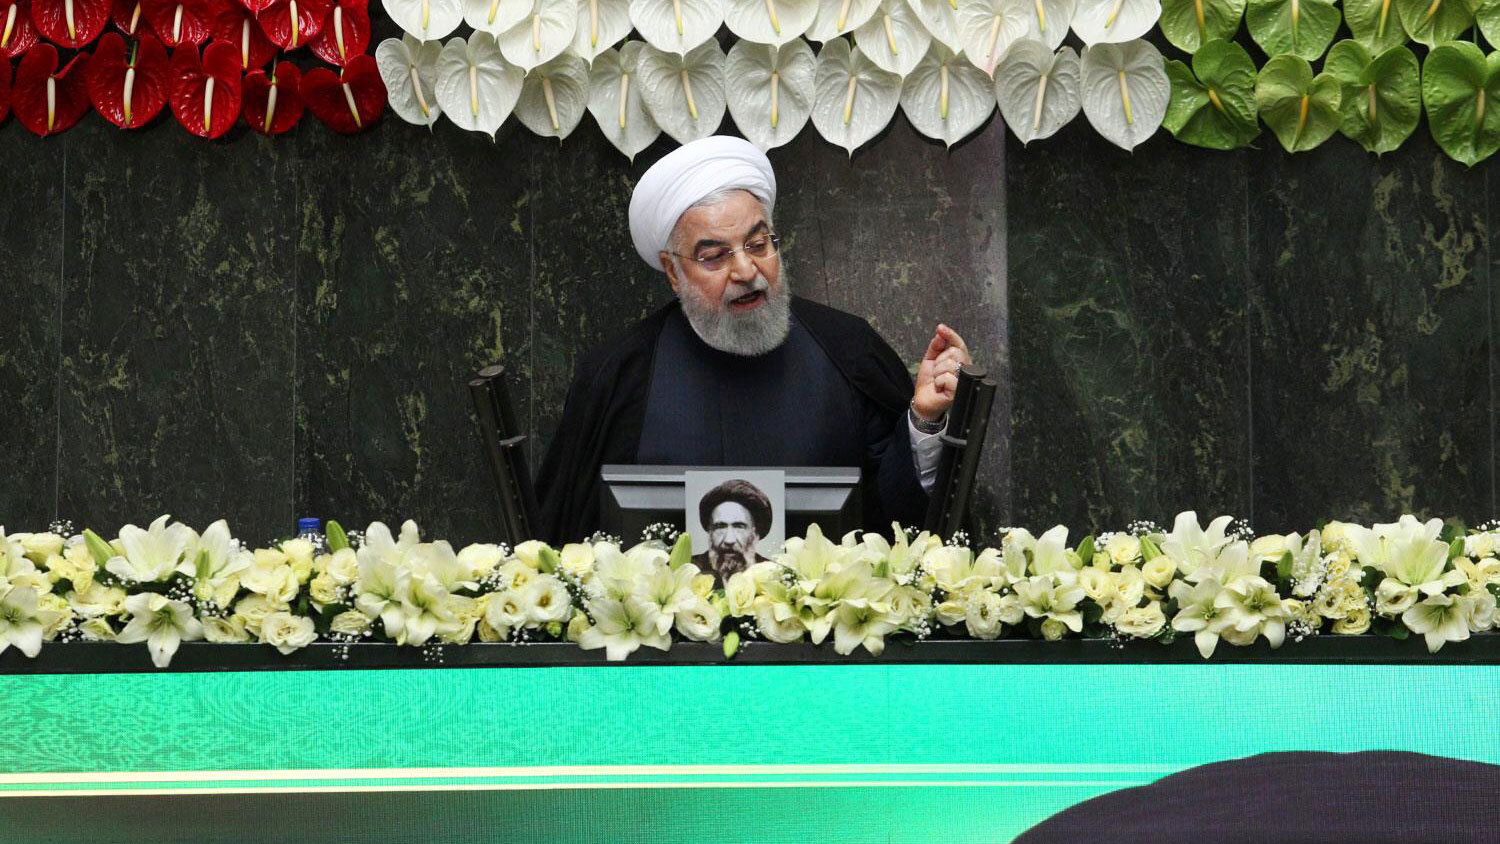 Iranian President Hassan Rouhani speaks during the opening ceremony of Iran's 11th parliament in Tehran, Iran, May 27, 2020.